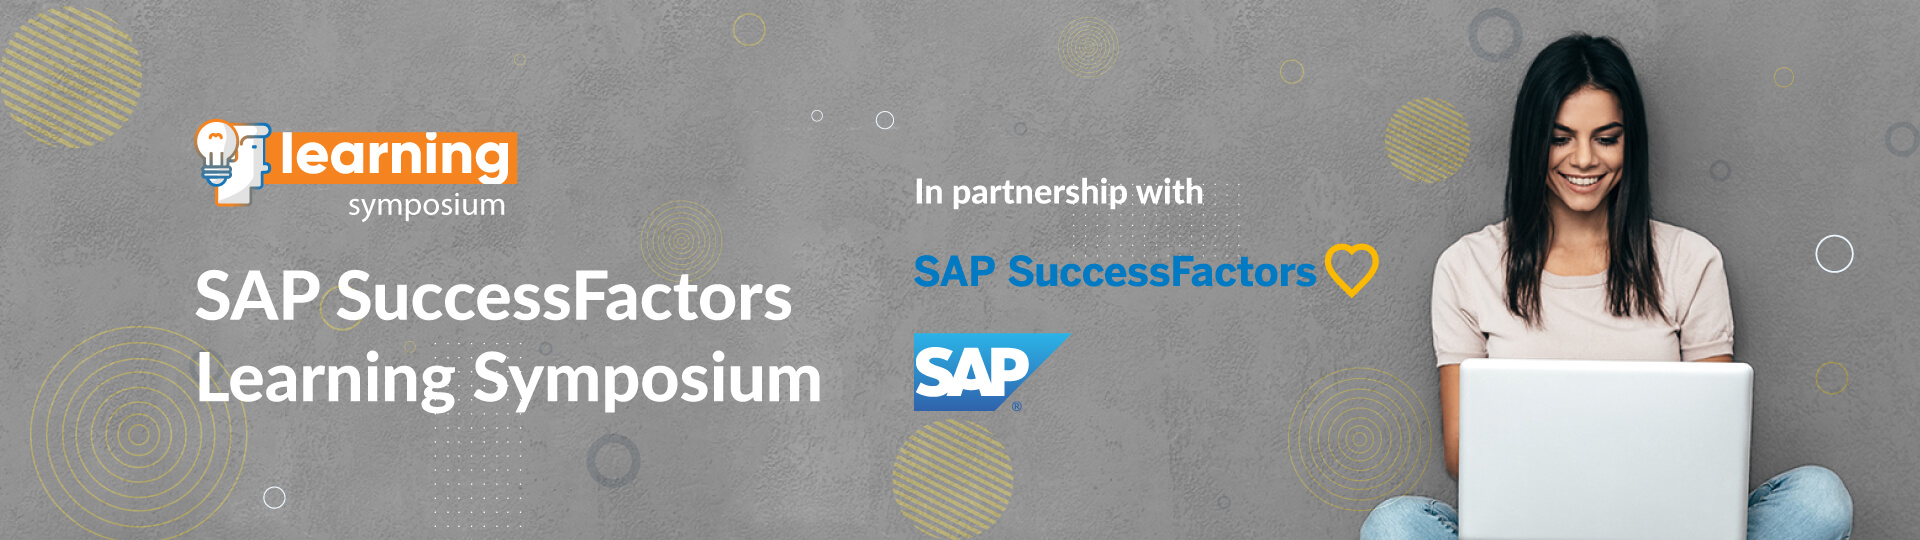 SAP-Learning-Symposium-Banner-for-TT-events-page